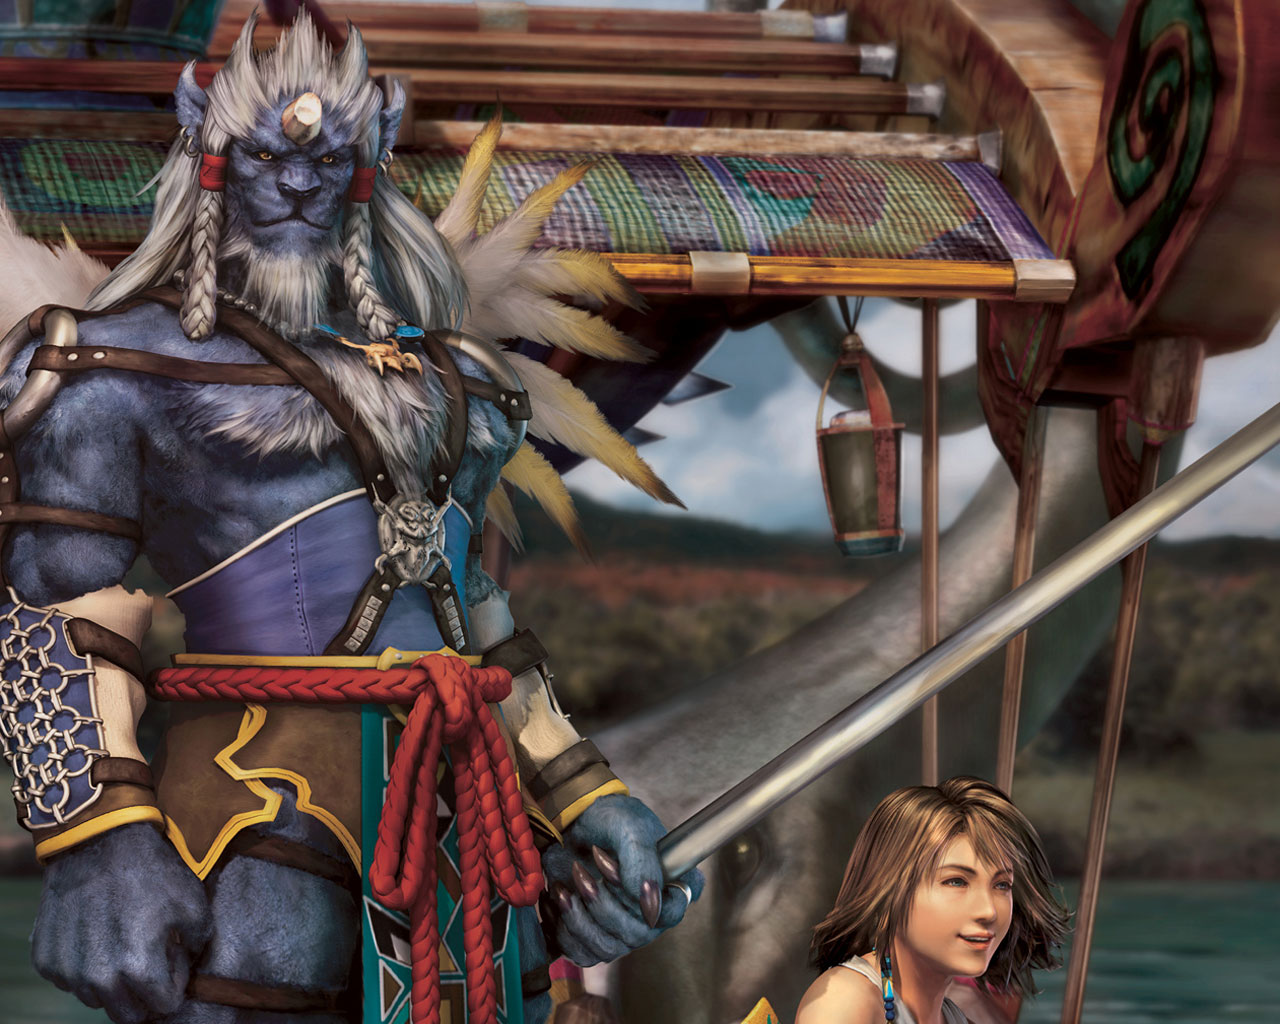 Final Fantasy X Wallpapers Tidus Yuna Rikku Wakka Lulu Auron